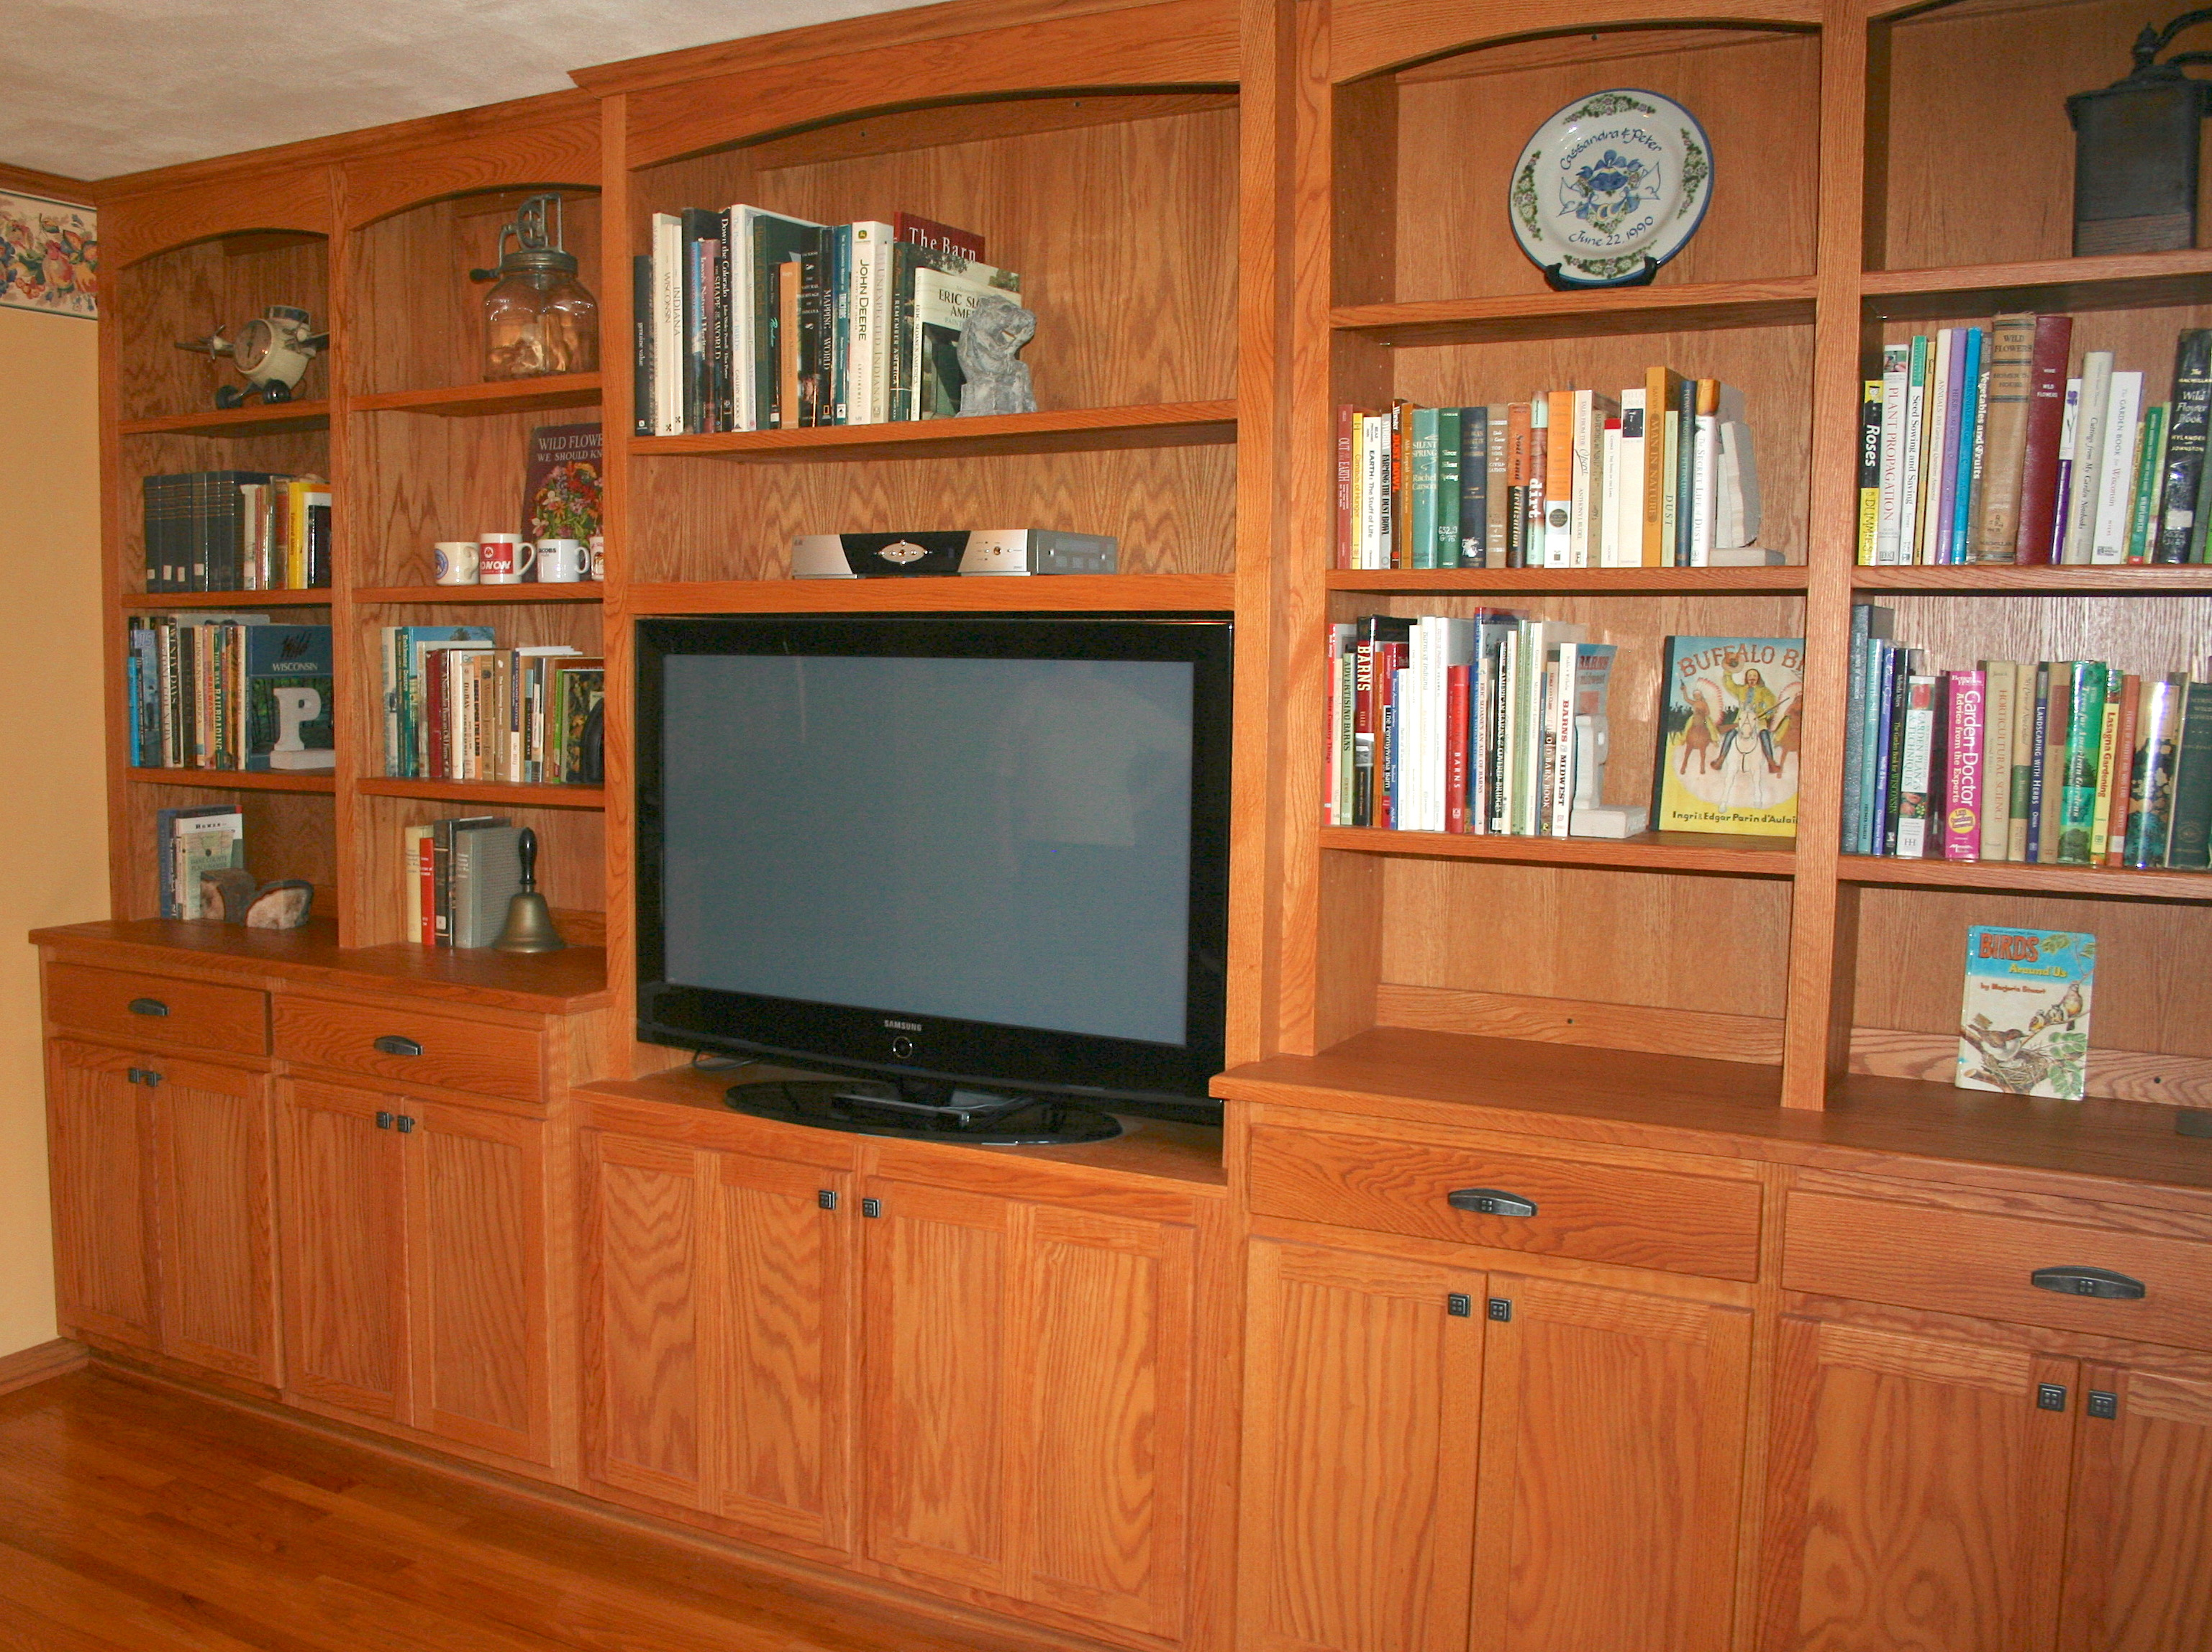 living-room-cabinet-with-bookshelf-and-TV